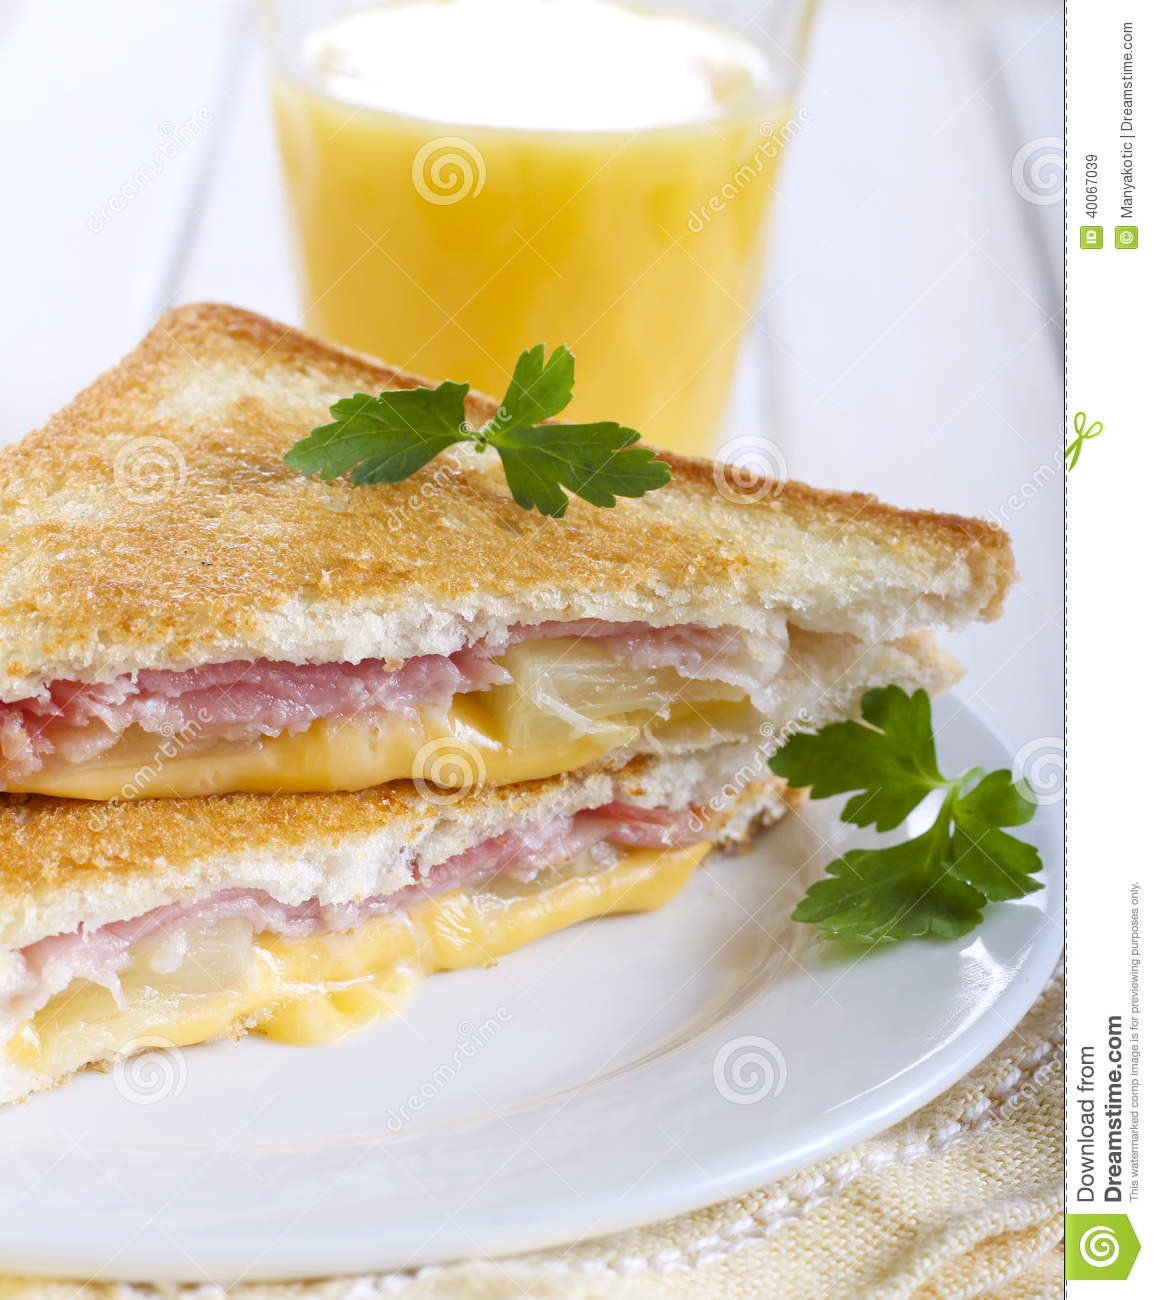 Grilled ham, pineapple and cheese sandwich and glass of orange juice.